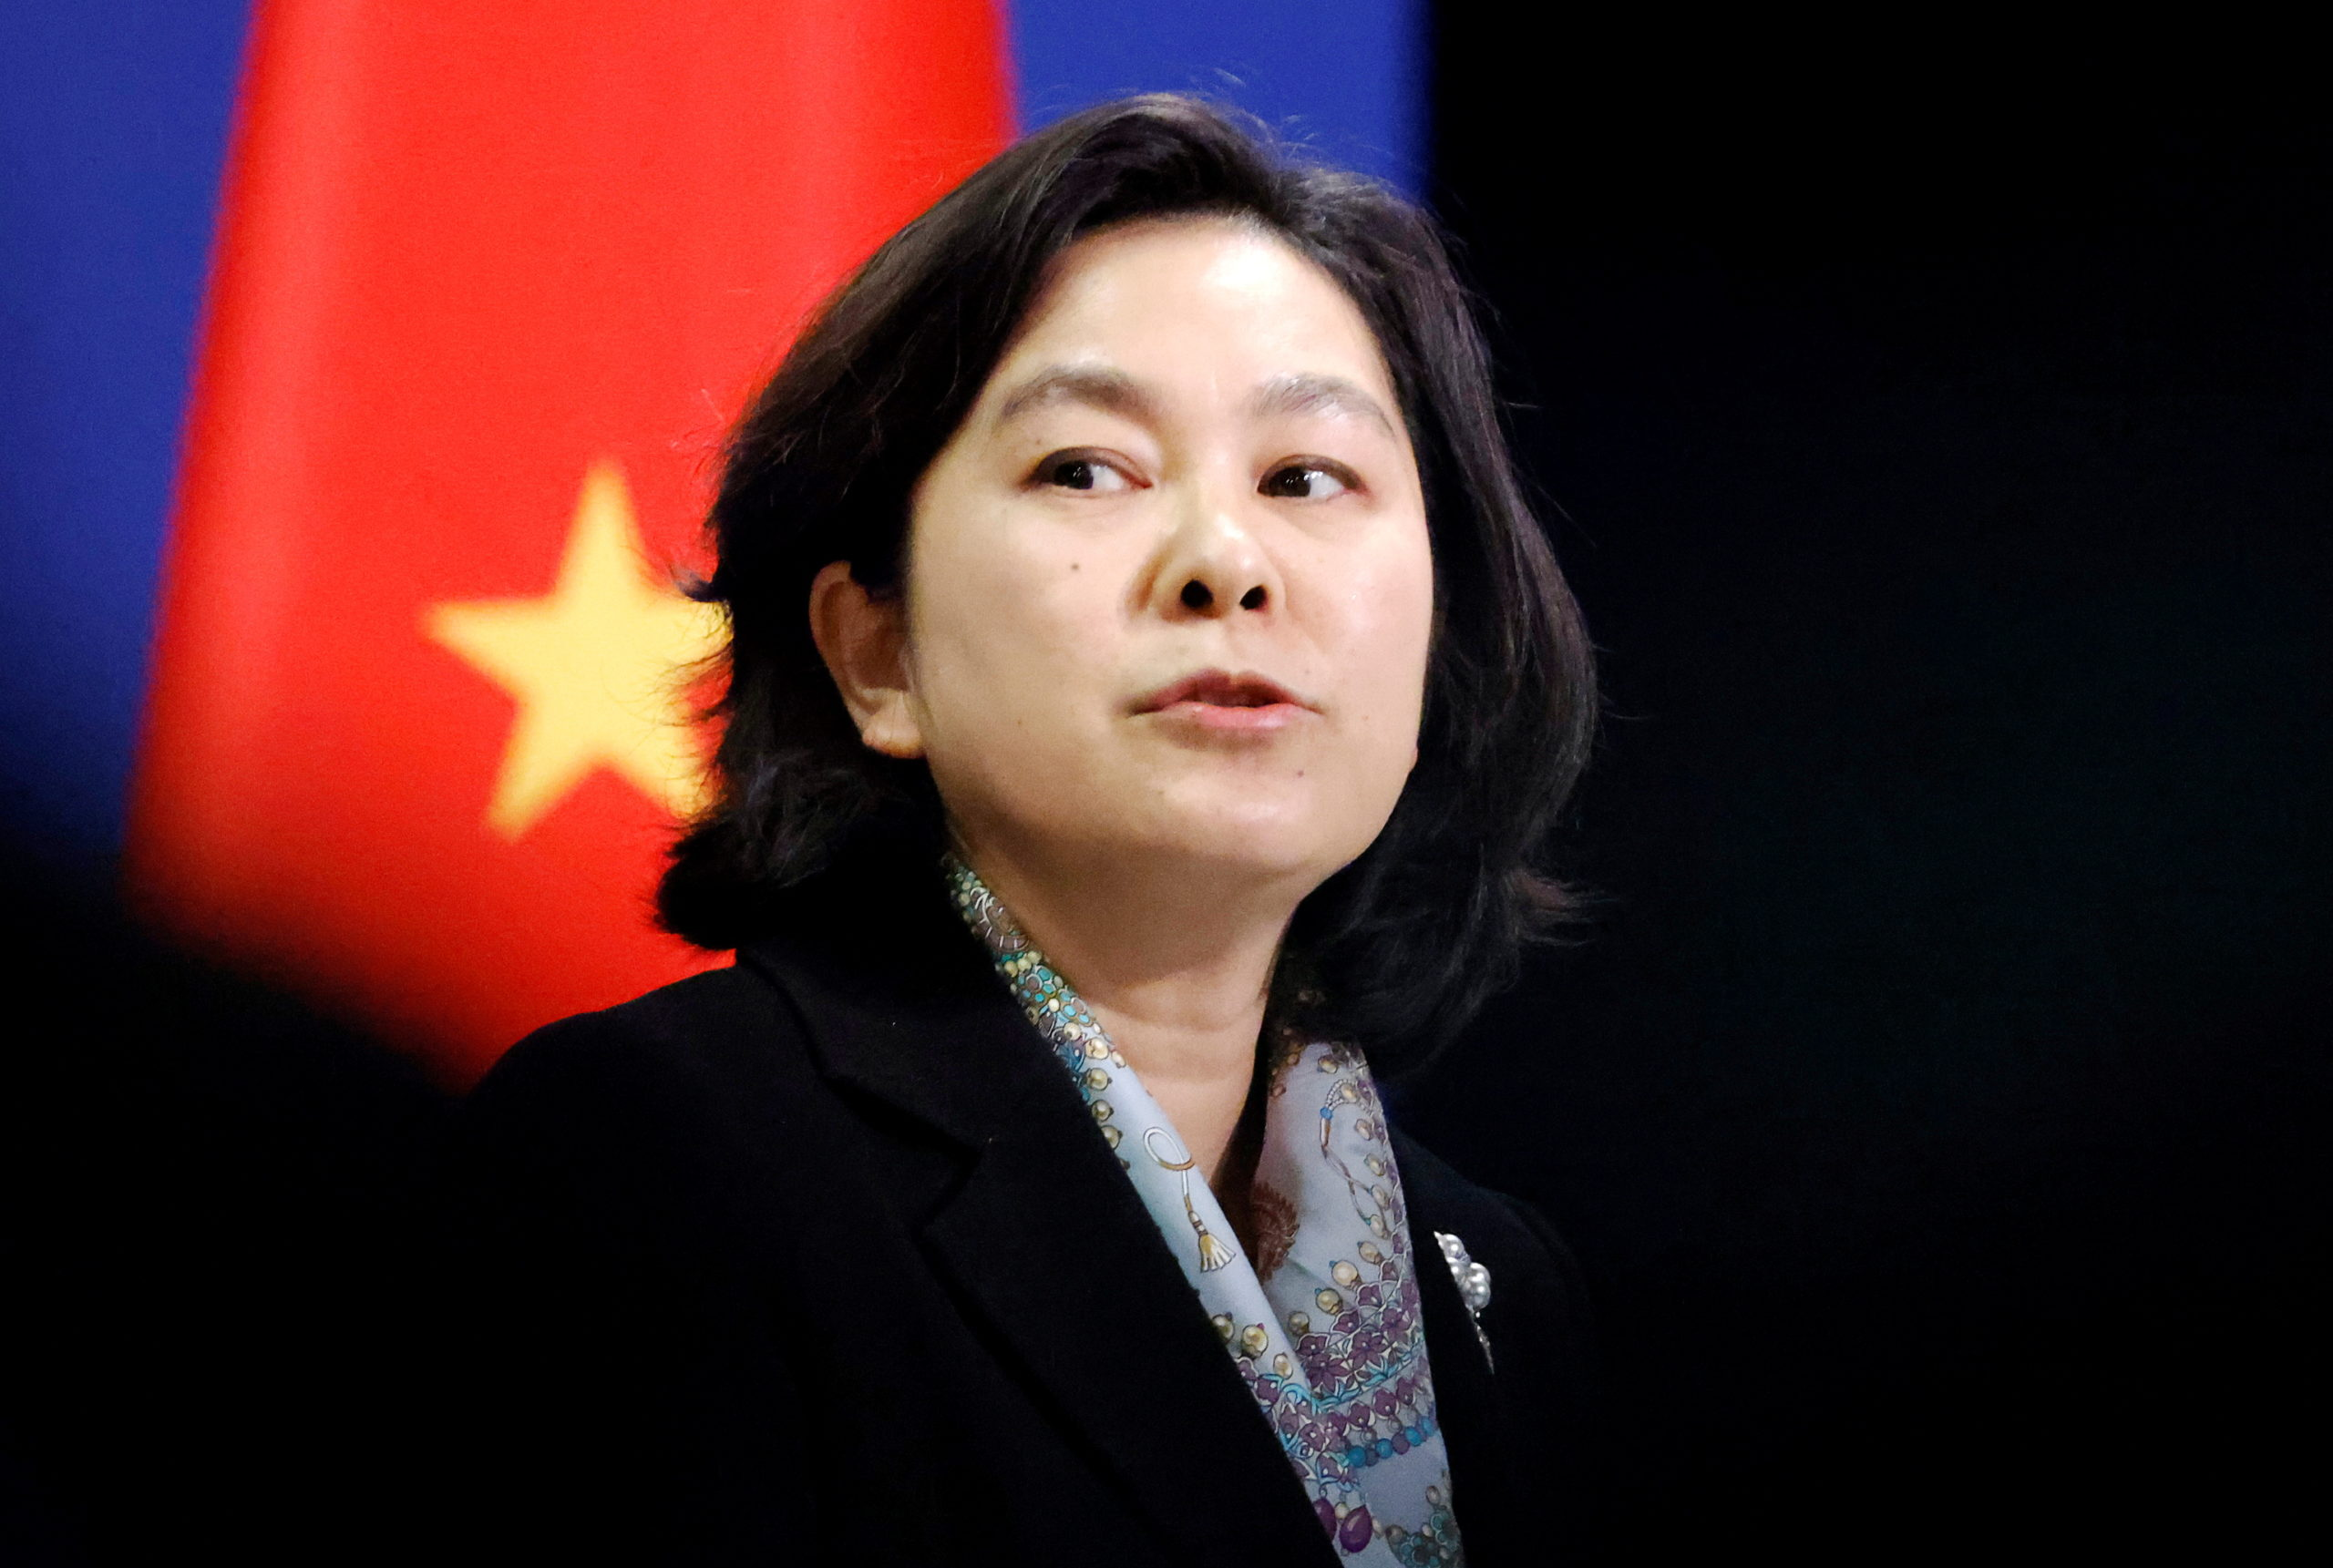 Chinese Foreign Ministry spokeswoman Hua Chunying holds a news conference in Beijing, China, November 30, 2020. (REUTERS/Thomas Peter)